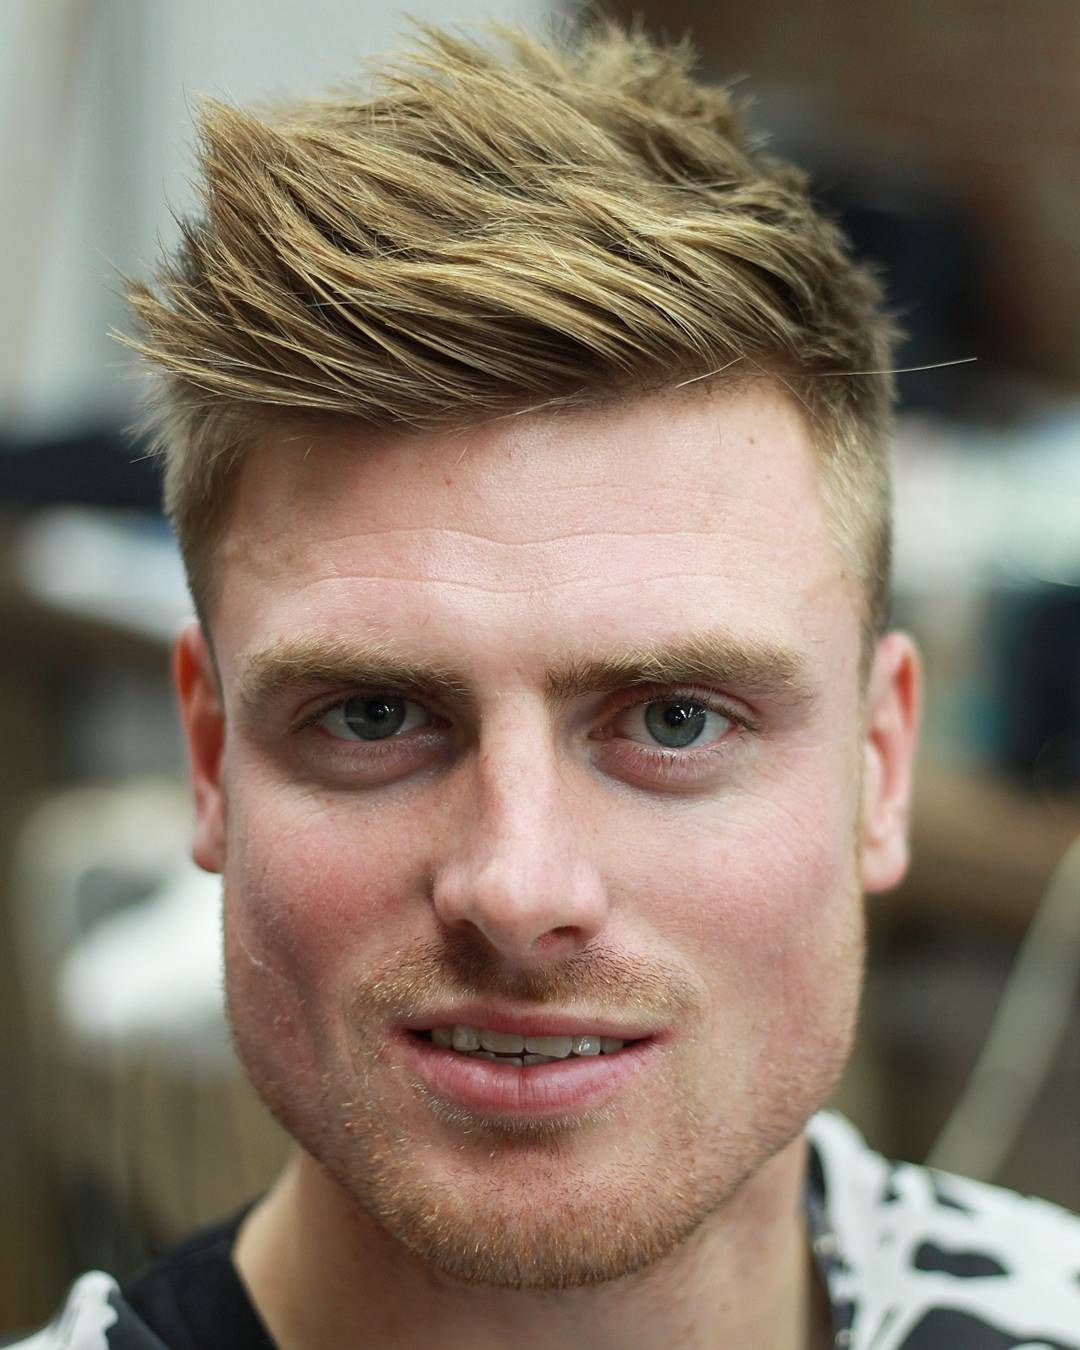 17 Cool Haircuts For Men With Thick Hair: 15 New Haircuts + Hairstyles For Men With Thick Hair